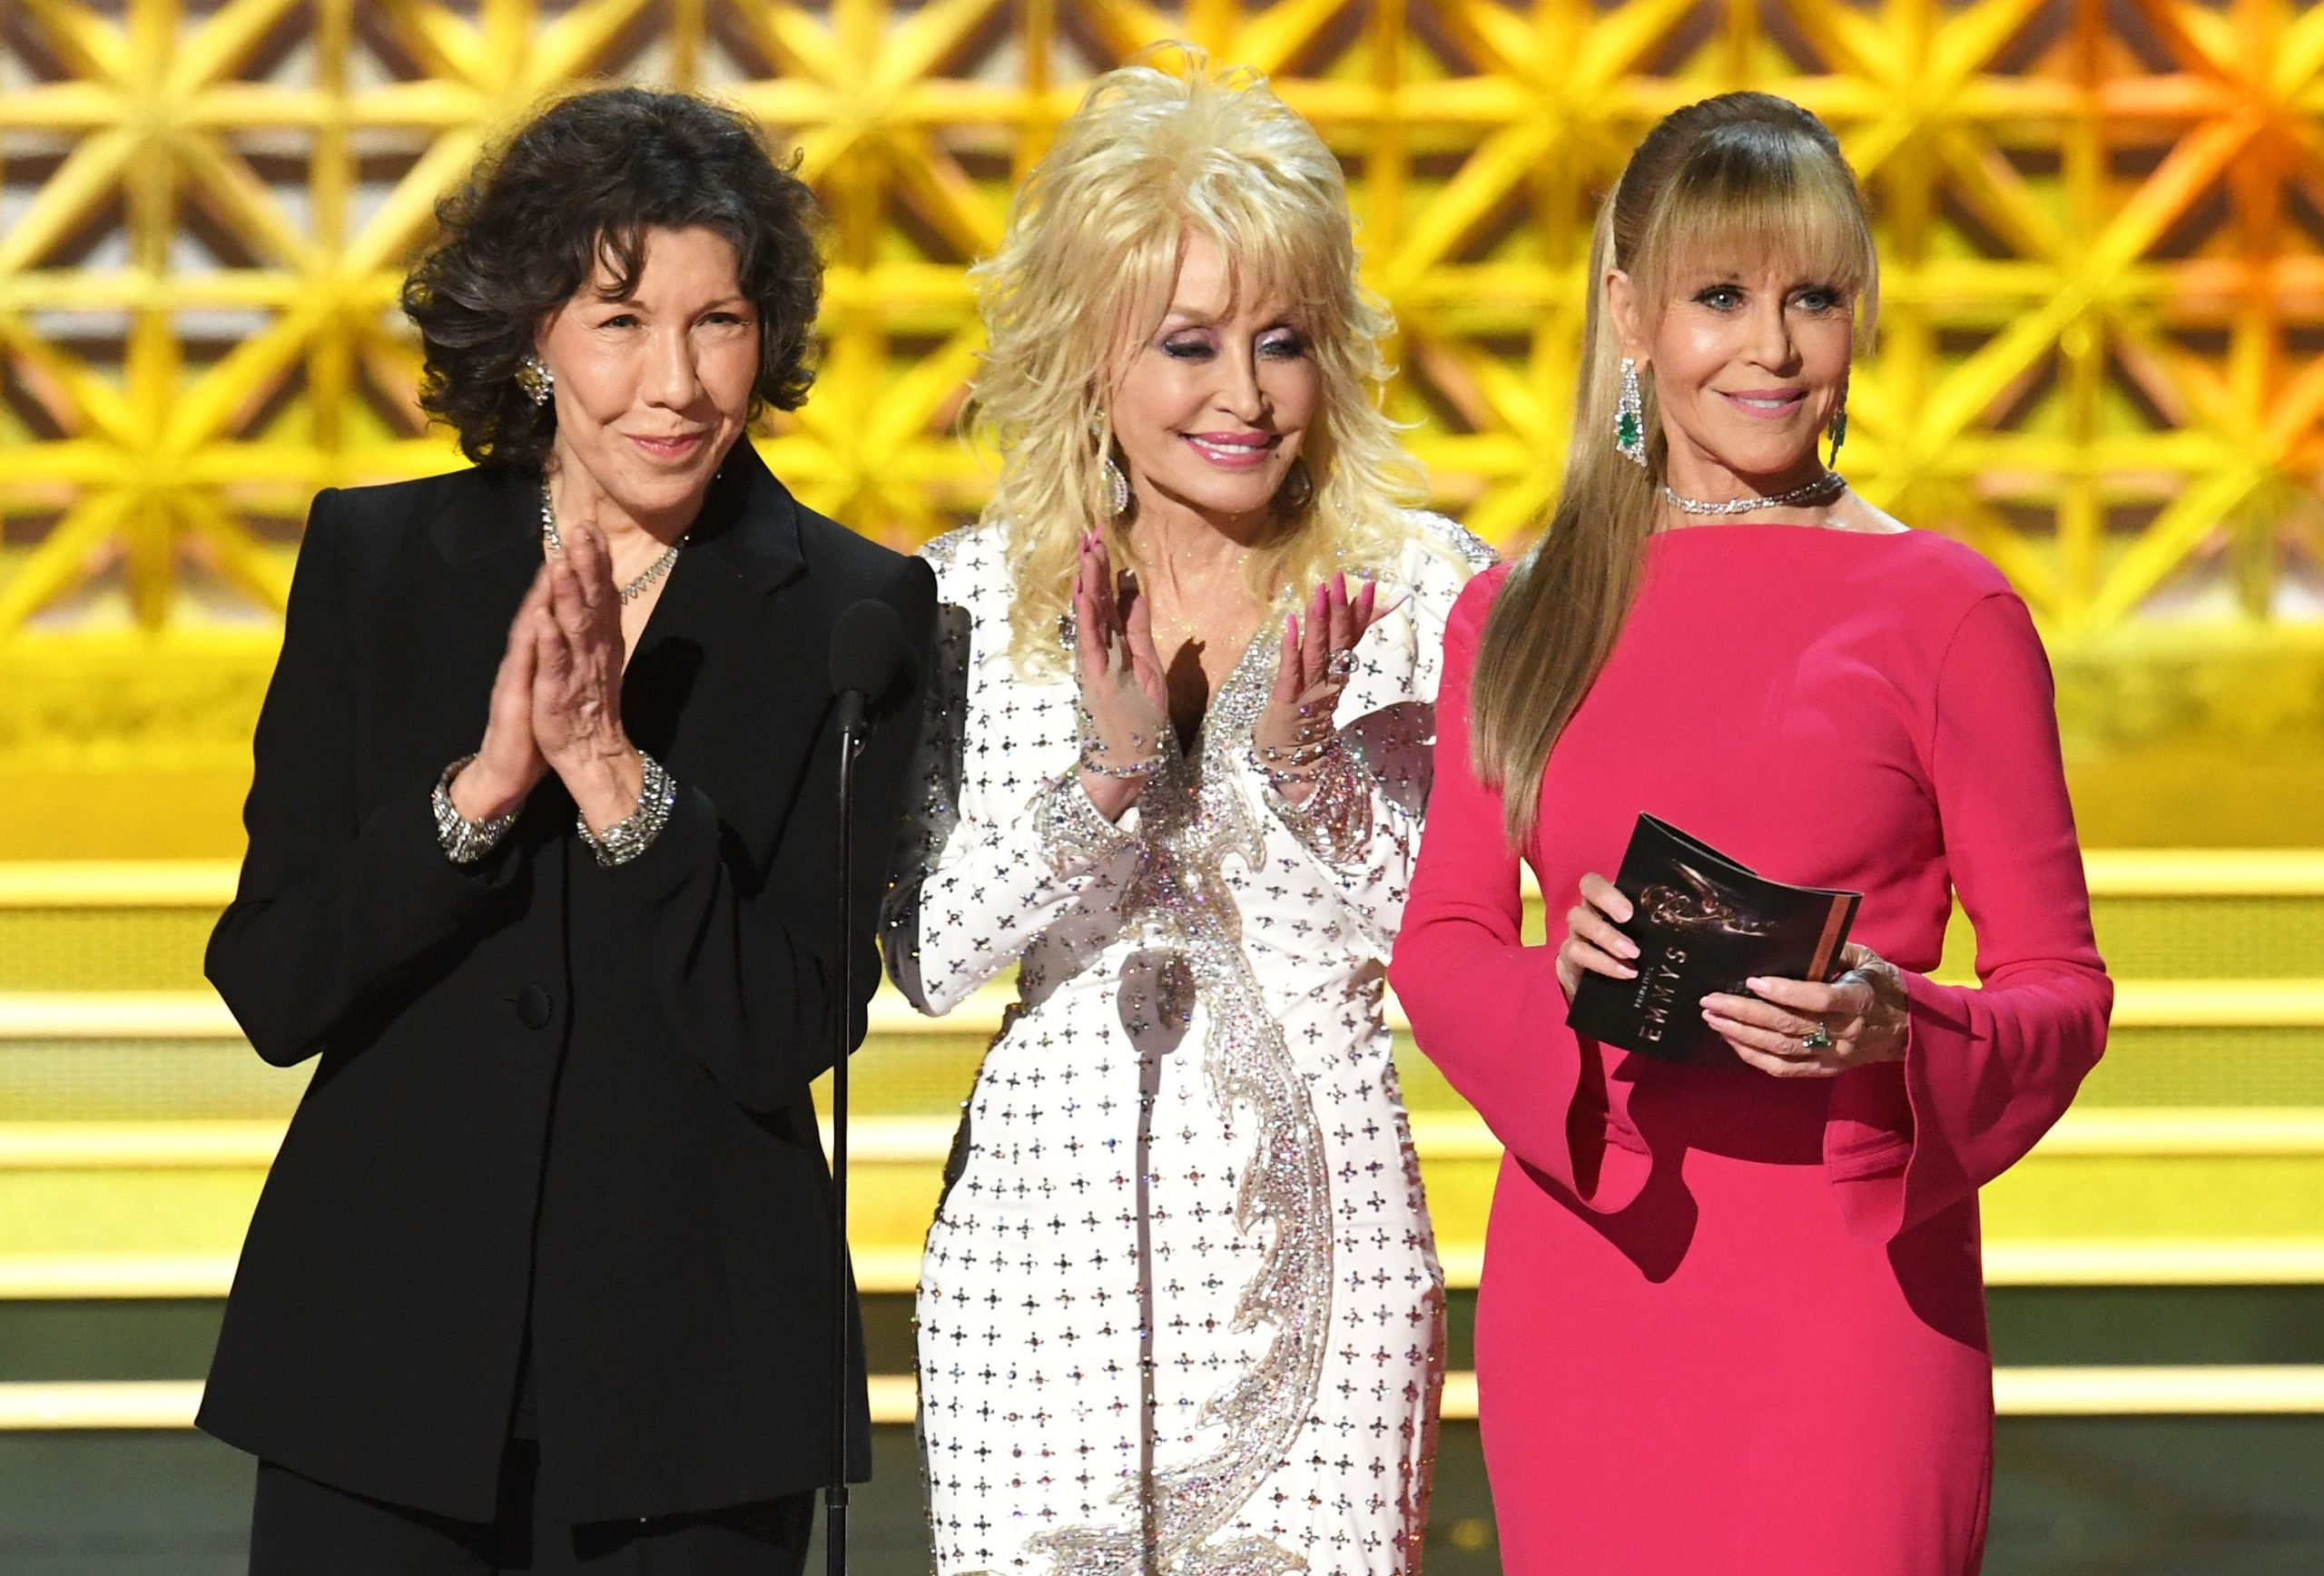 GettyImages 848648340 scaled You Don't Need To Work Hard To Enjoy These 10 Facts About The Film 9 To 5!